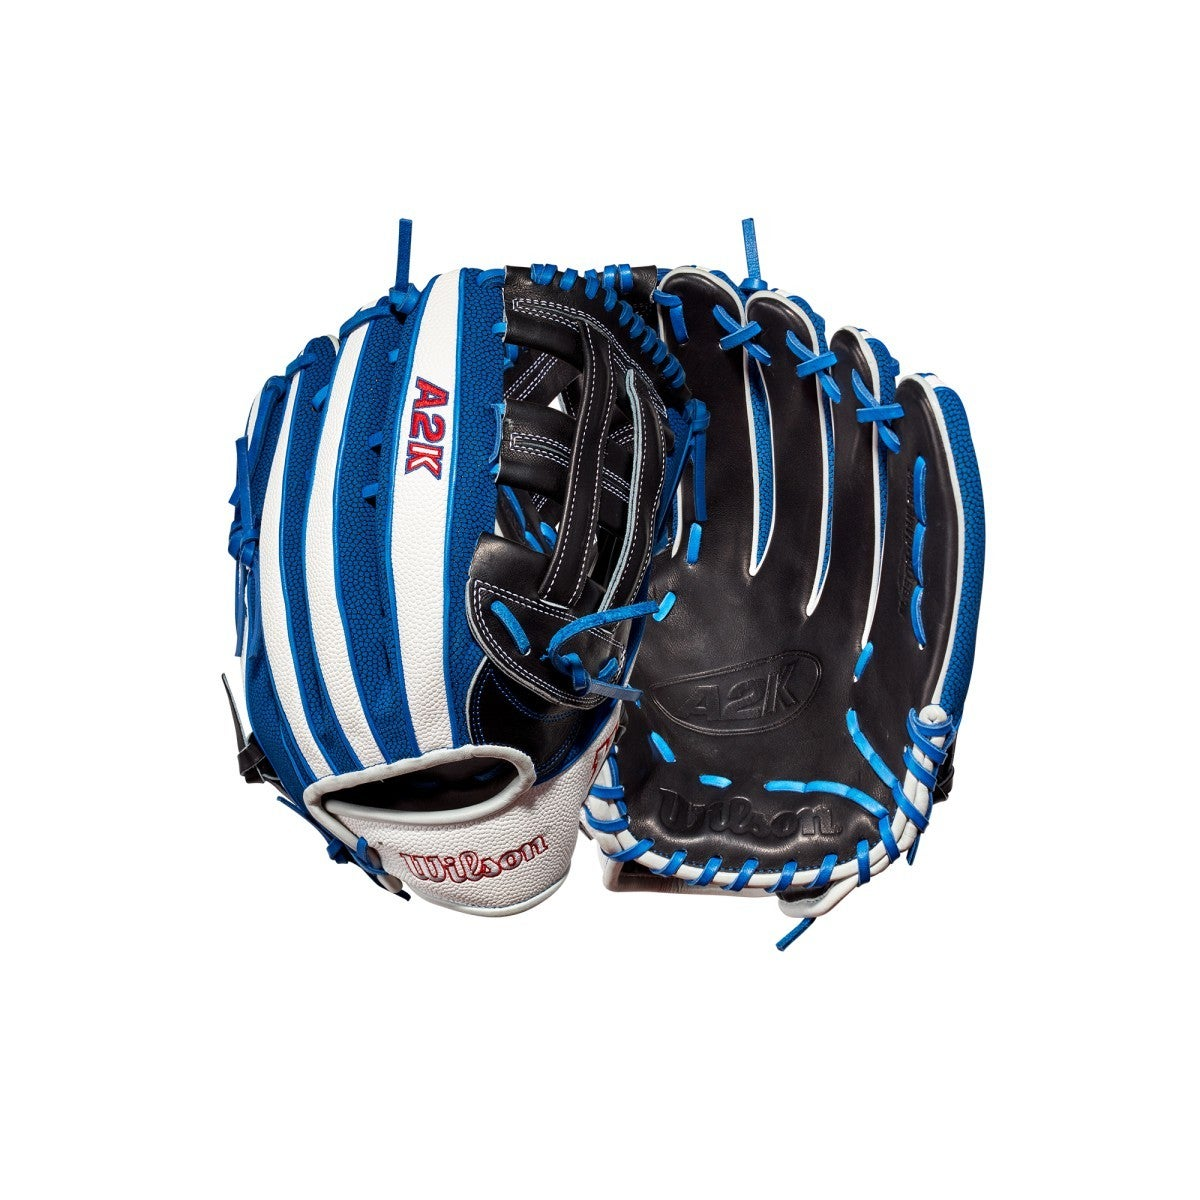 "2021 A2K MB50 GM 12.5"" Baseball Outfield Glove"